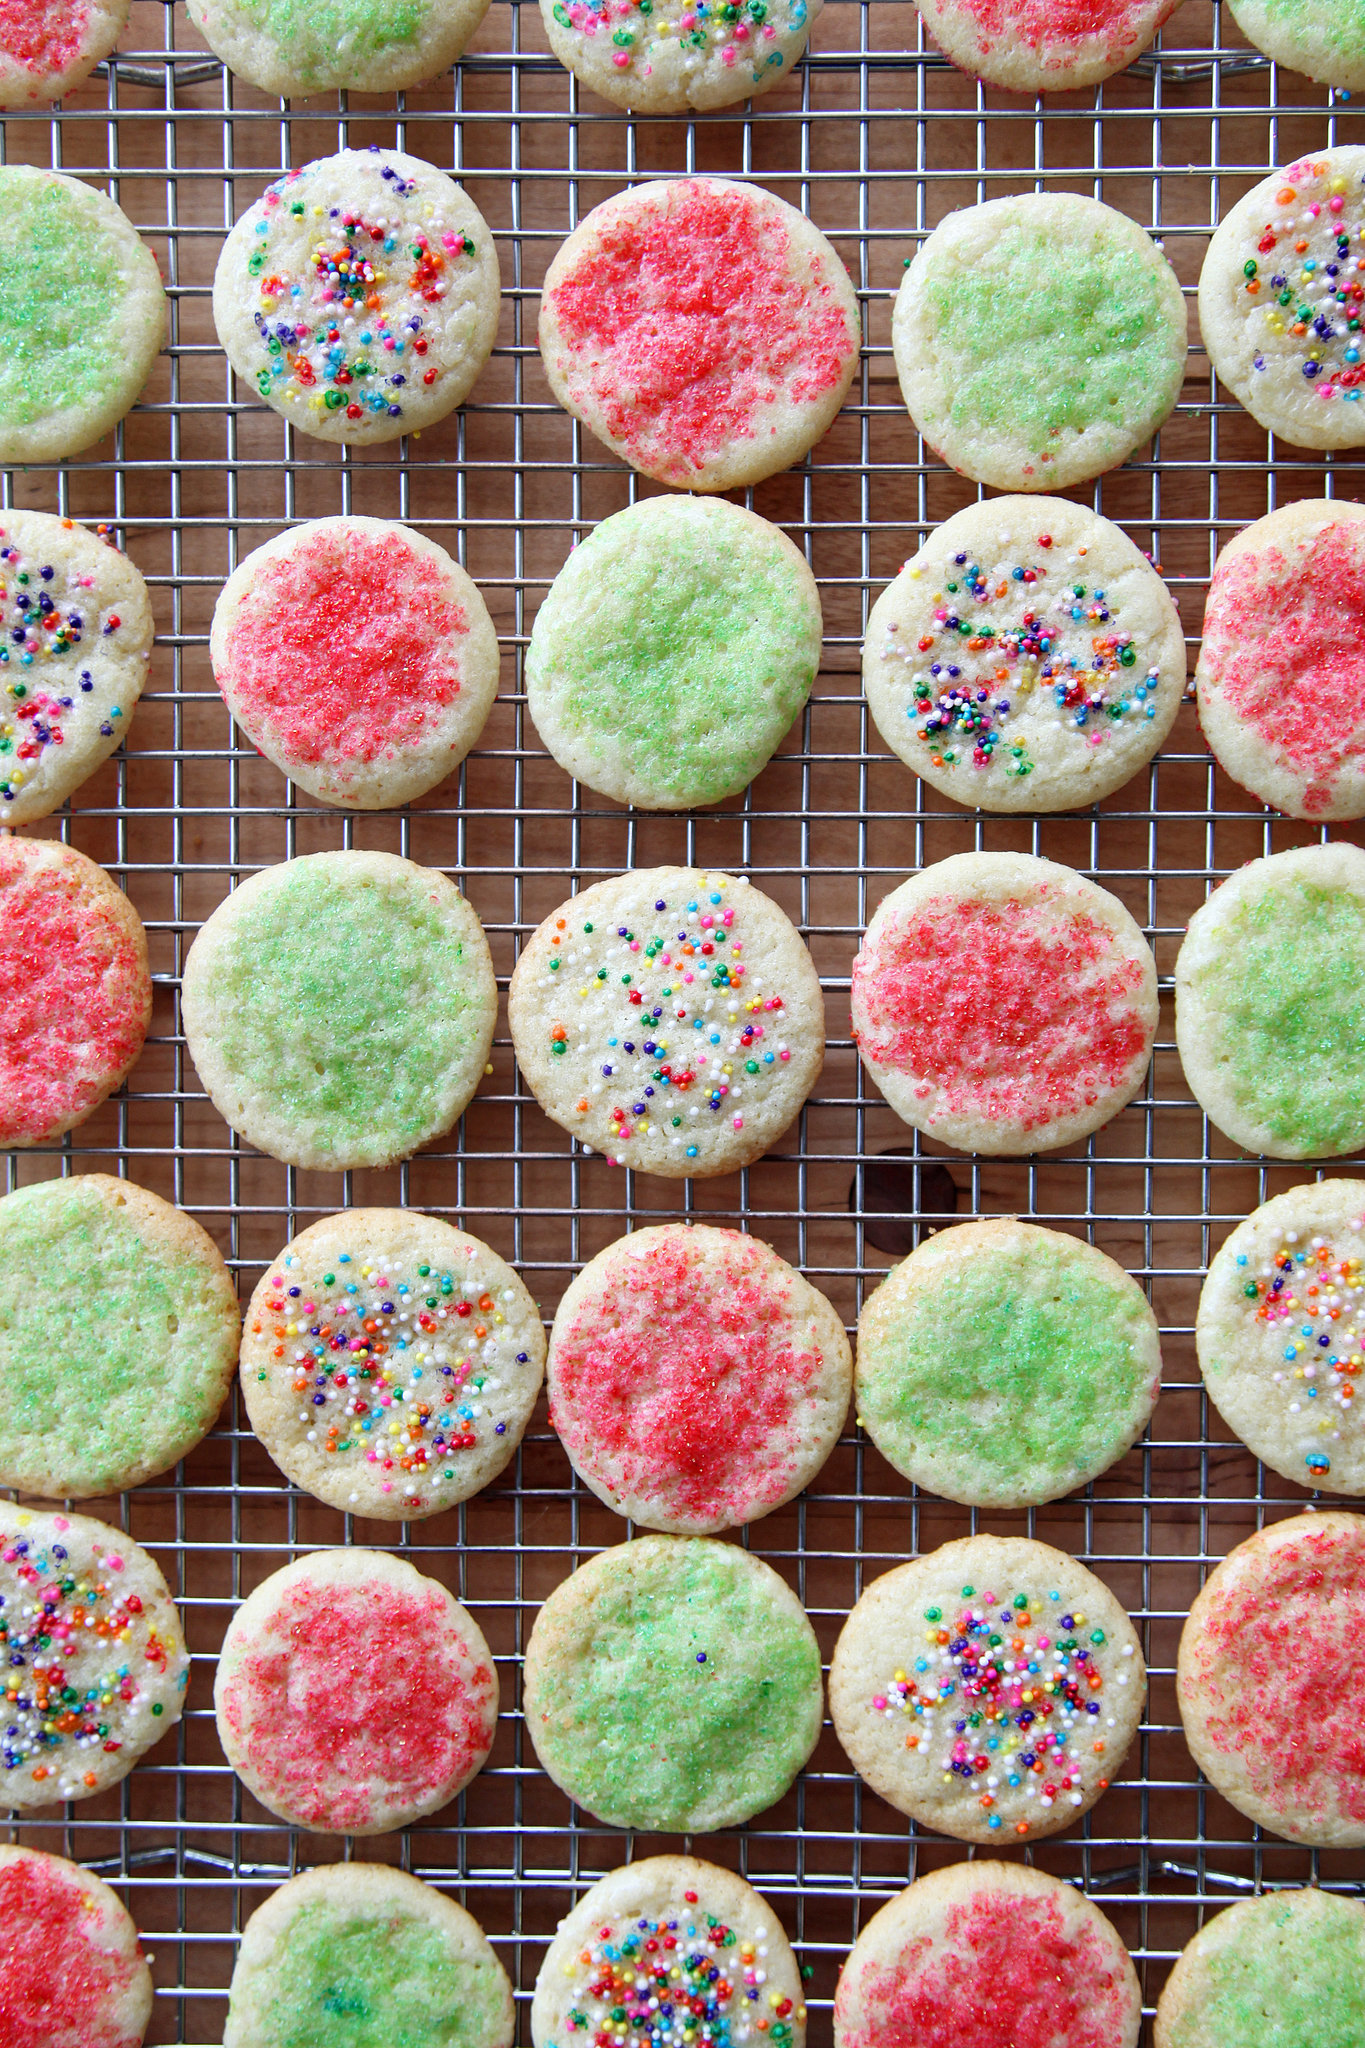 Chewy Sugar Cookies | 30 Edible Gifts You Can Make at the Last Minute ...